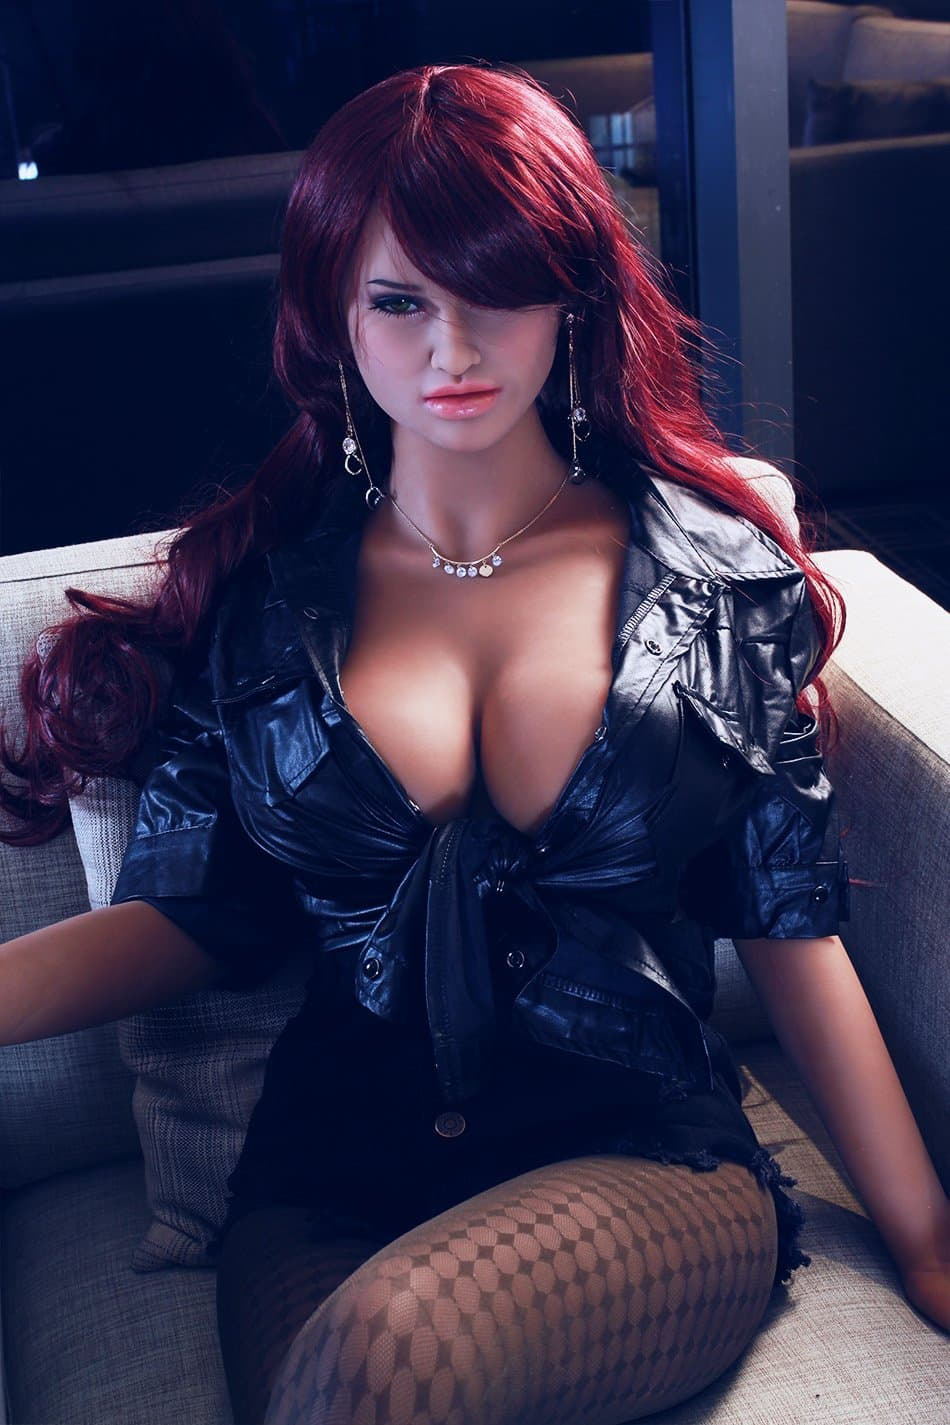 corina 165cm jy big boobs athletic red hair tan skin tpe sex doll(11)